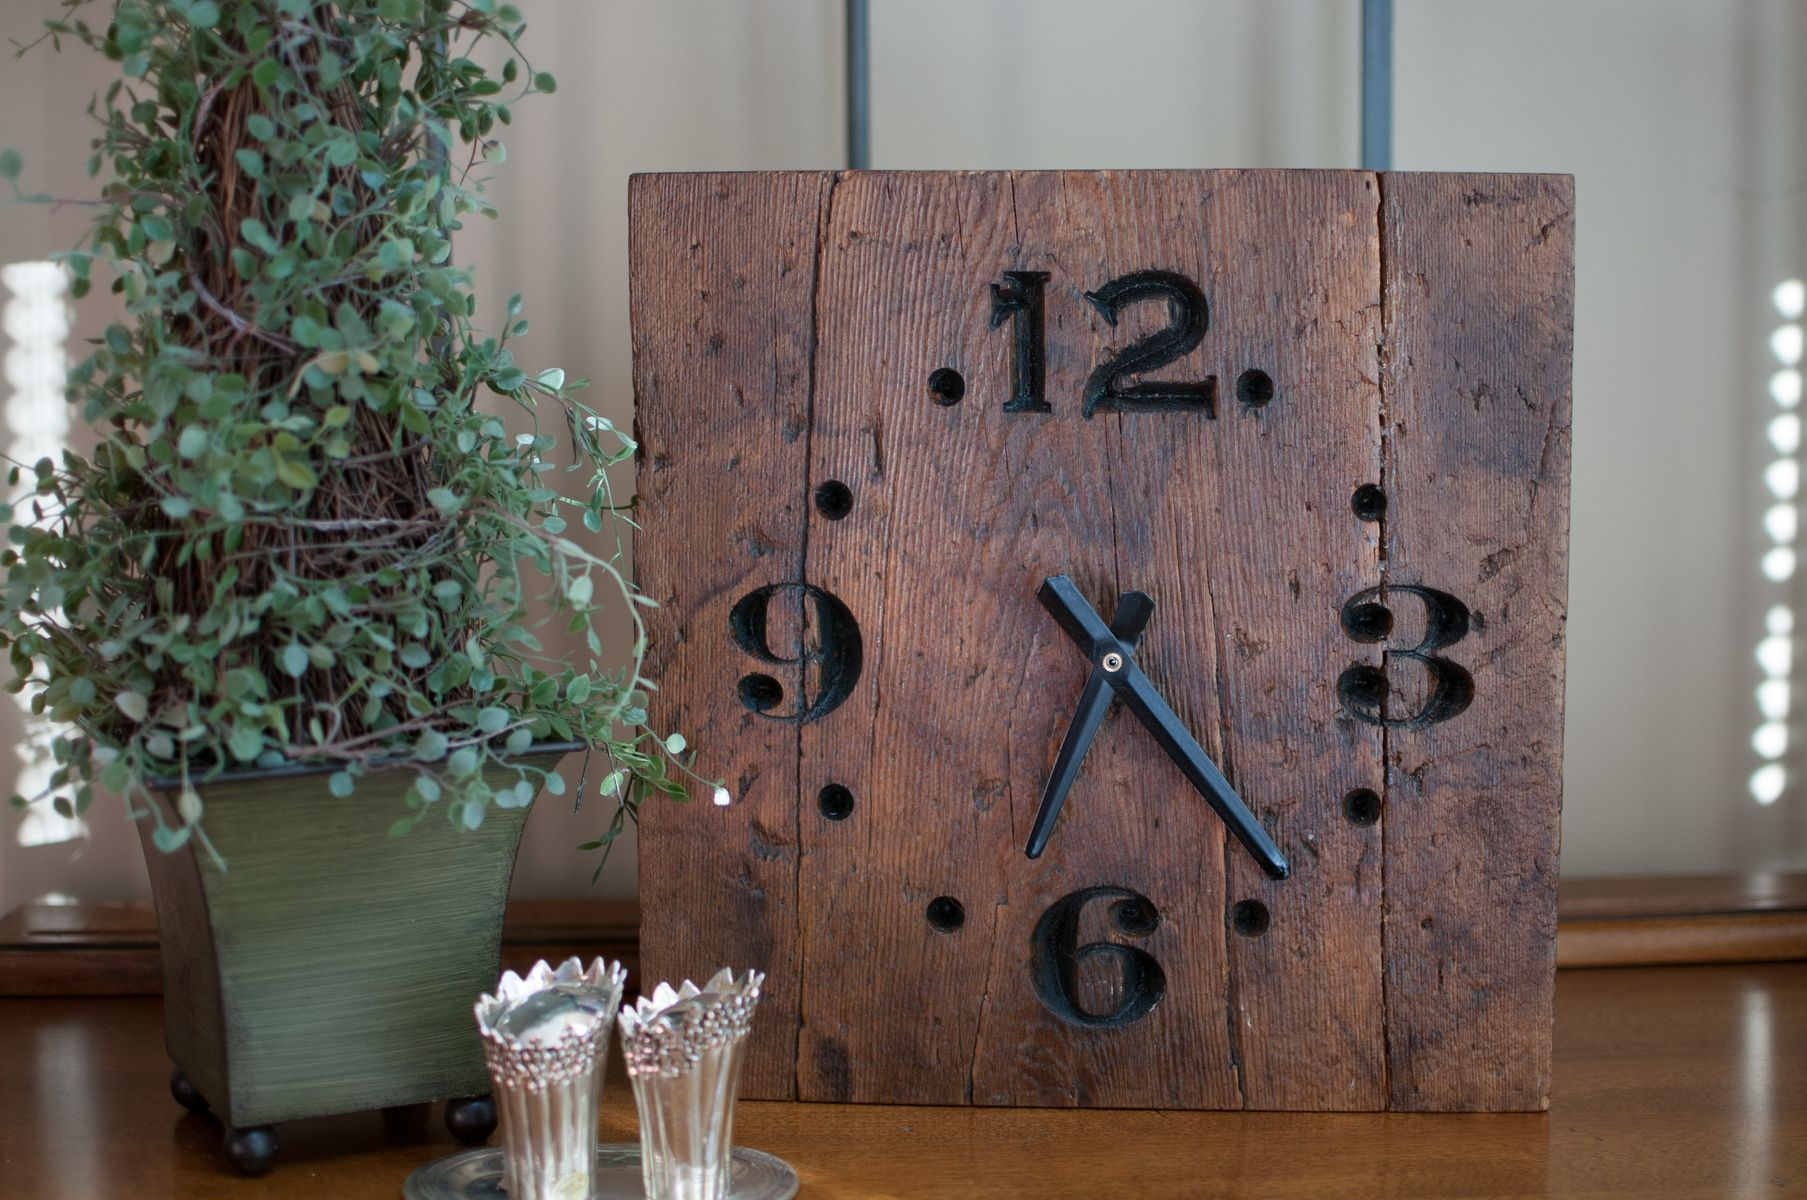 Rustic Wooden Decor Hand Made Rustic Reclaimed Wood Clock By The Green Gift